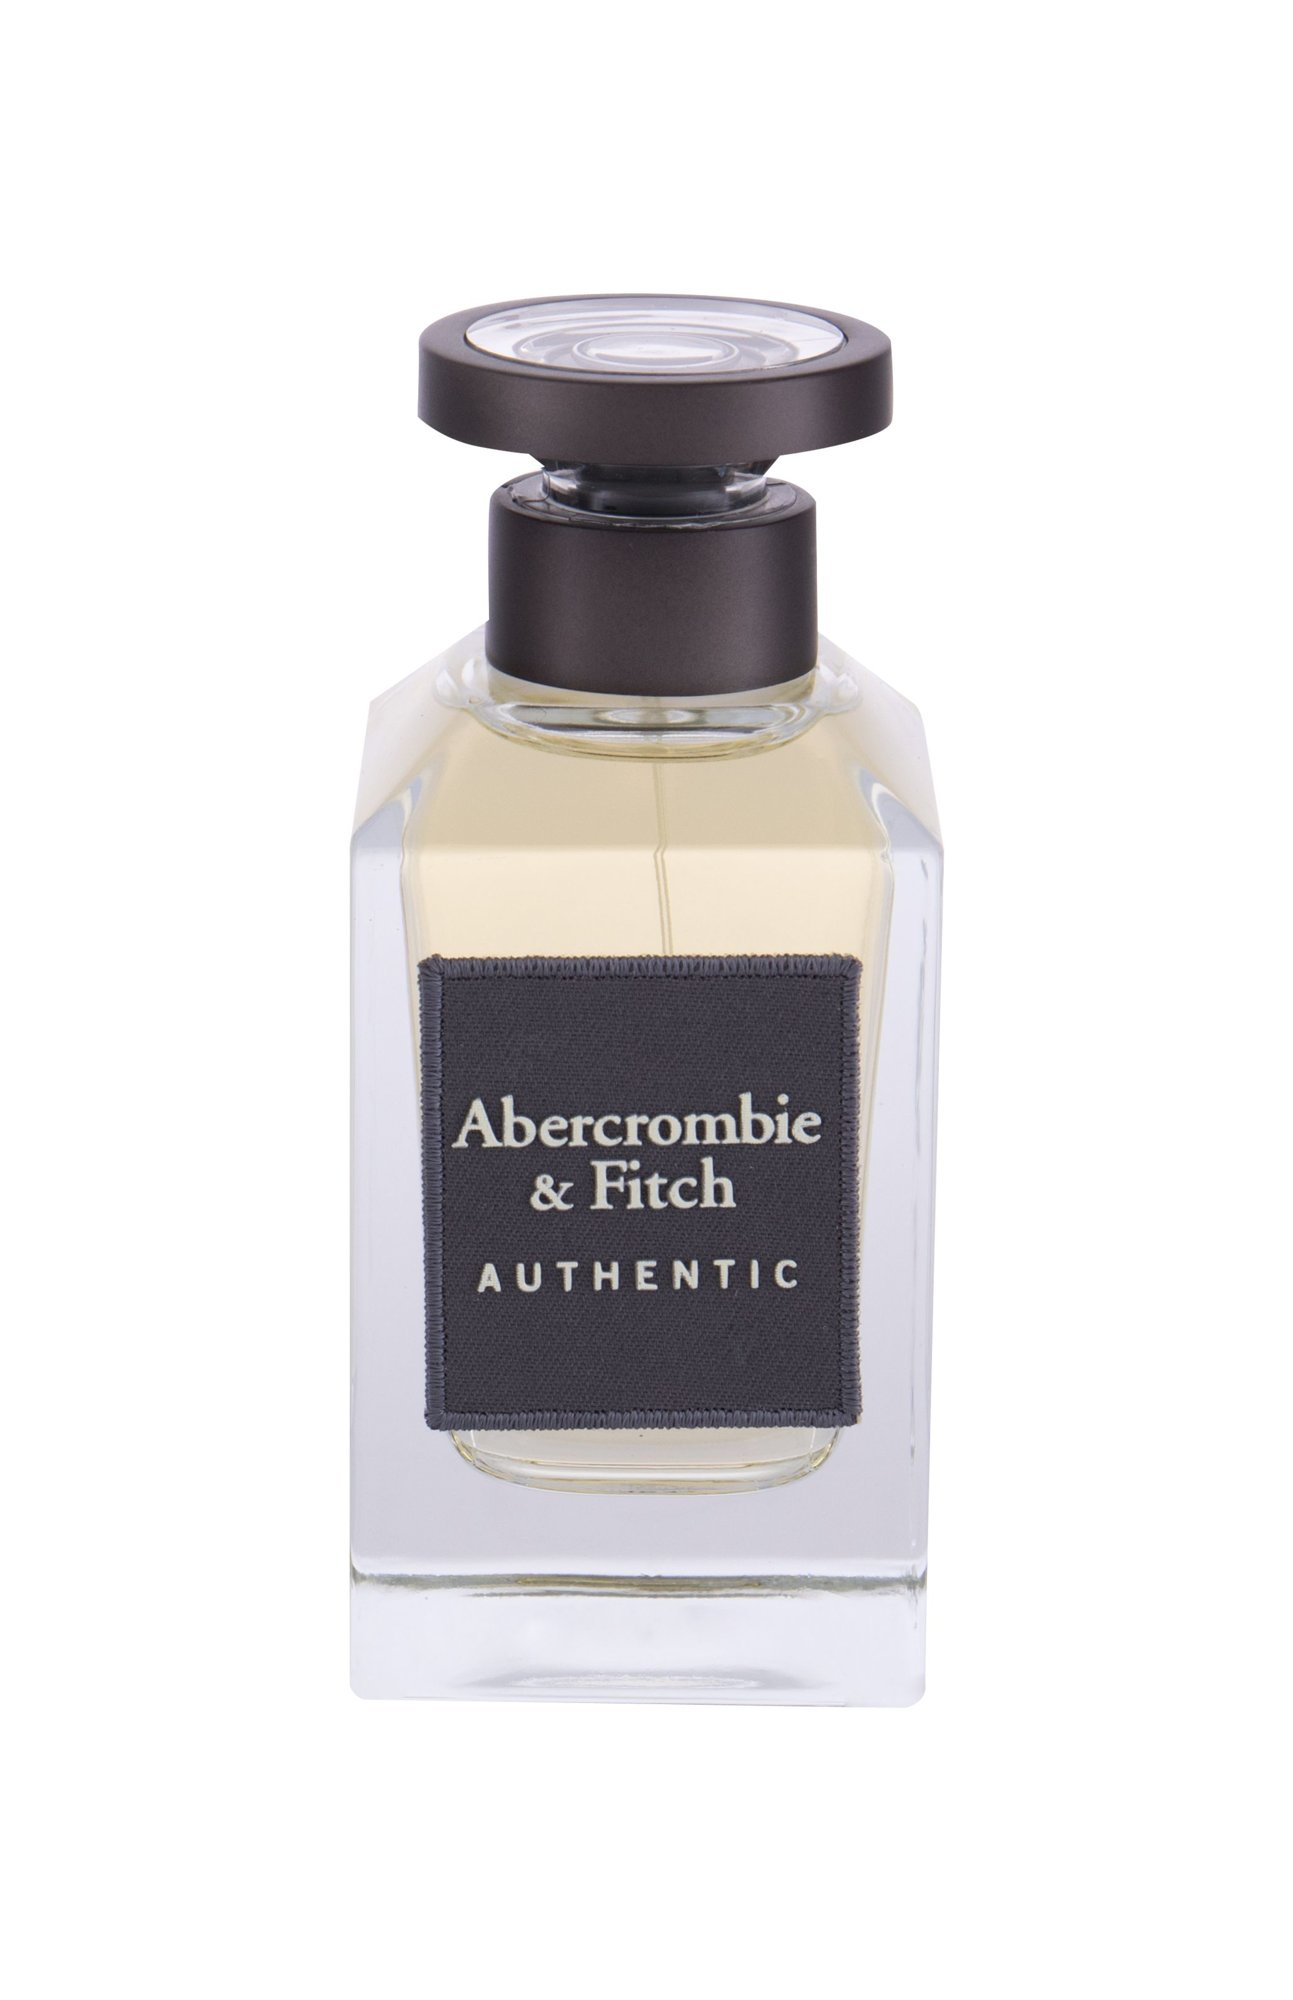 Abercrombie & Fitch Authentic  Toaletní voda, M, 100 ml